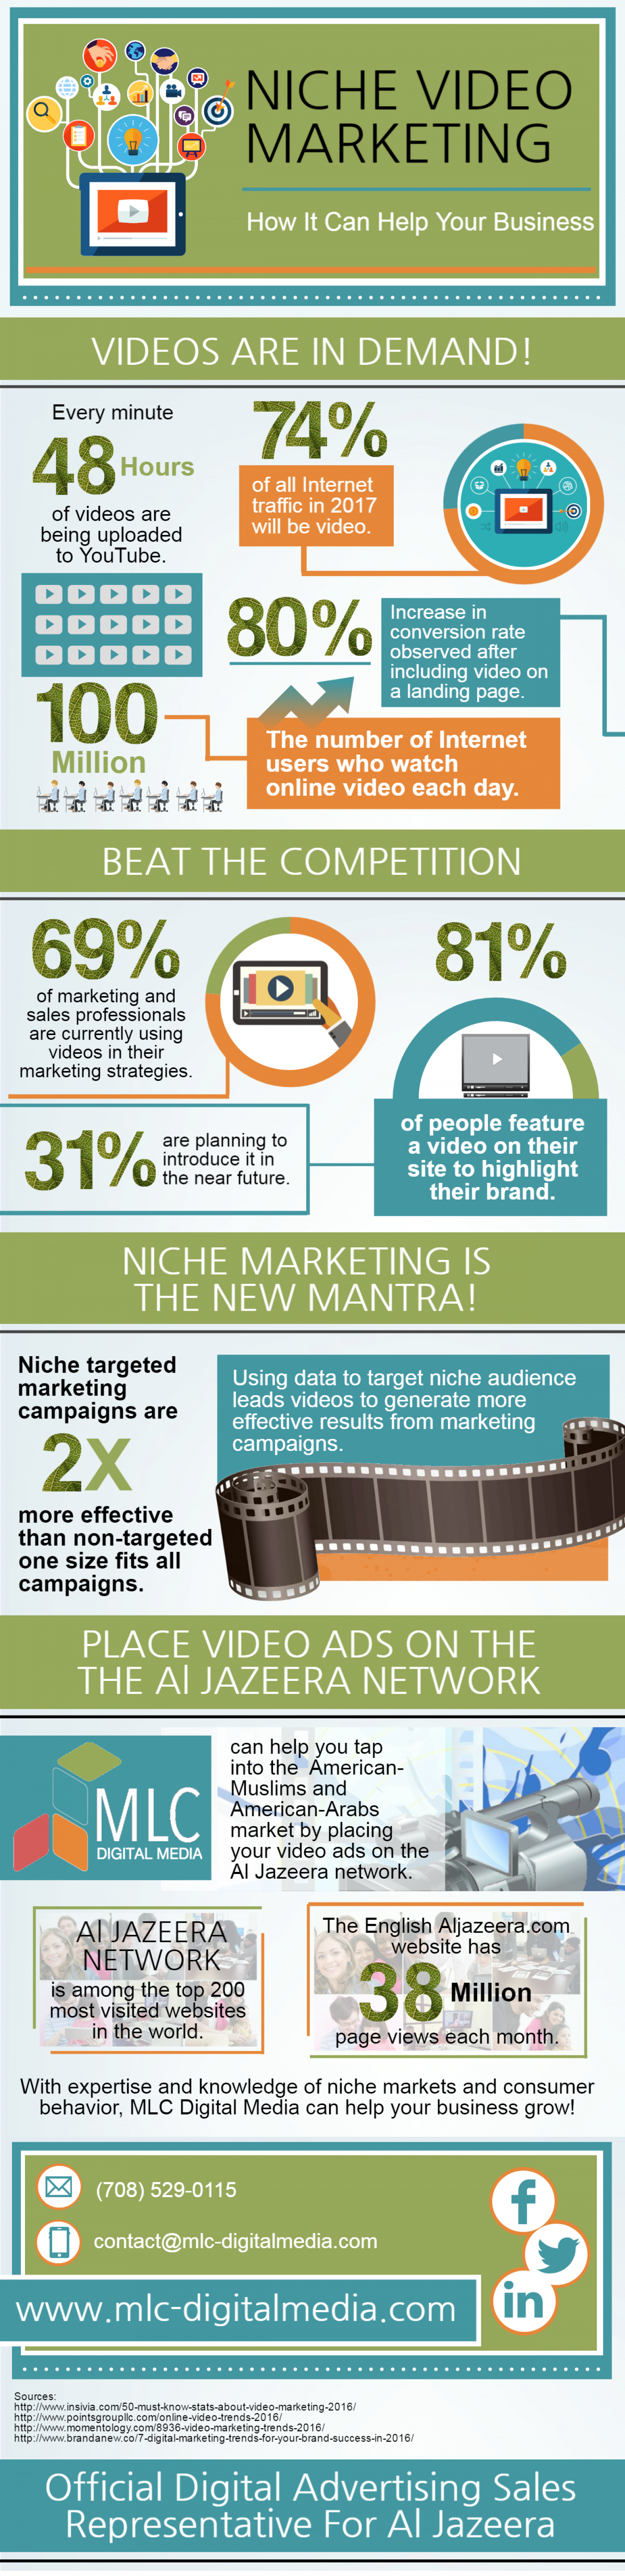 How Niche Video Marketing Can Help Your Bussiness Infographic